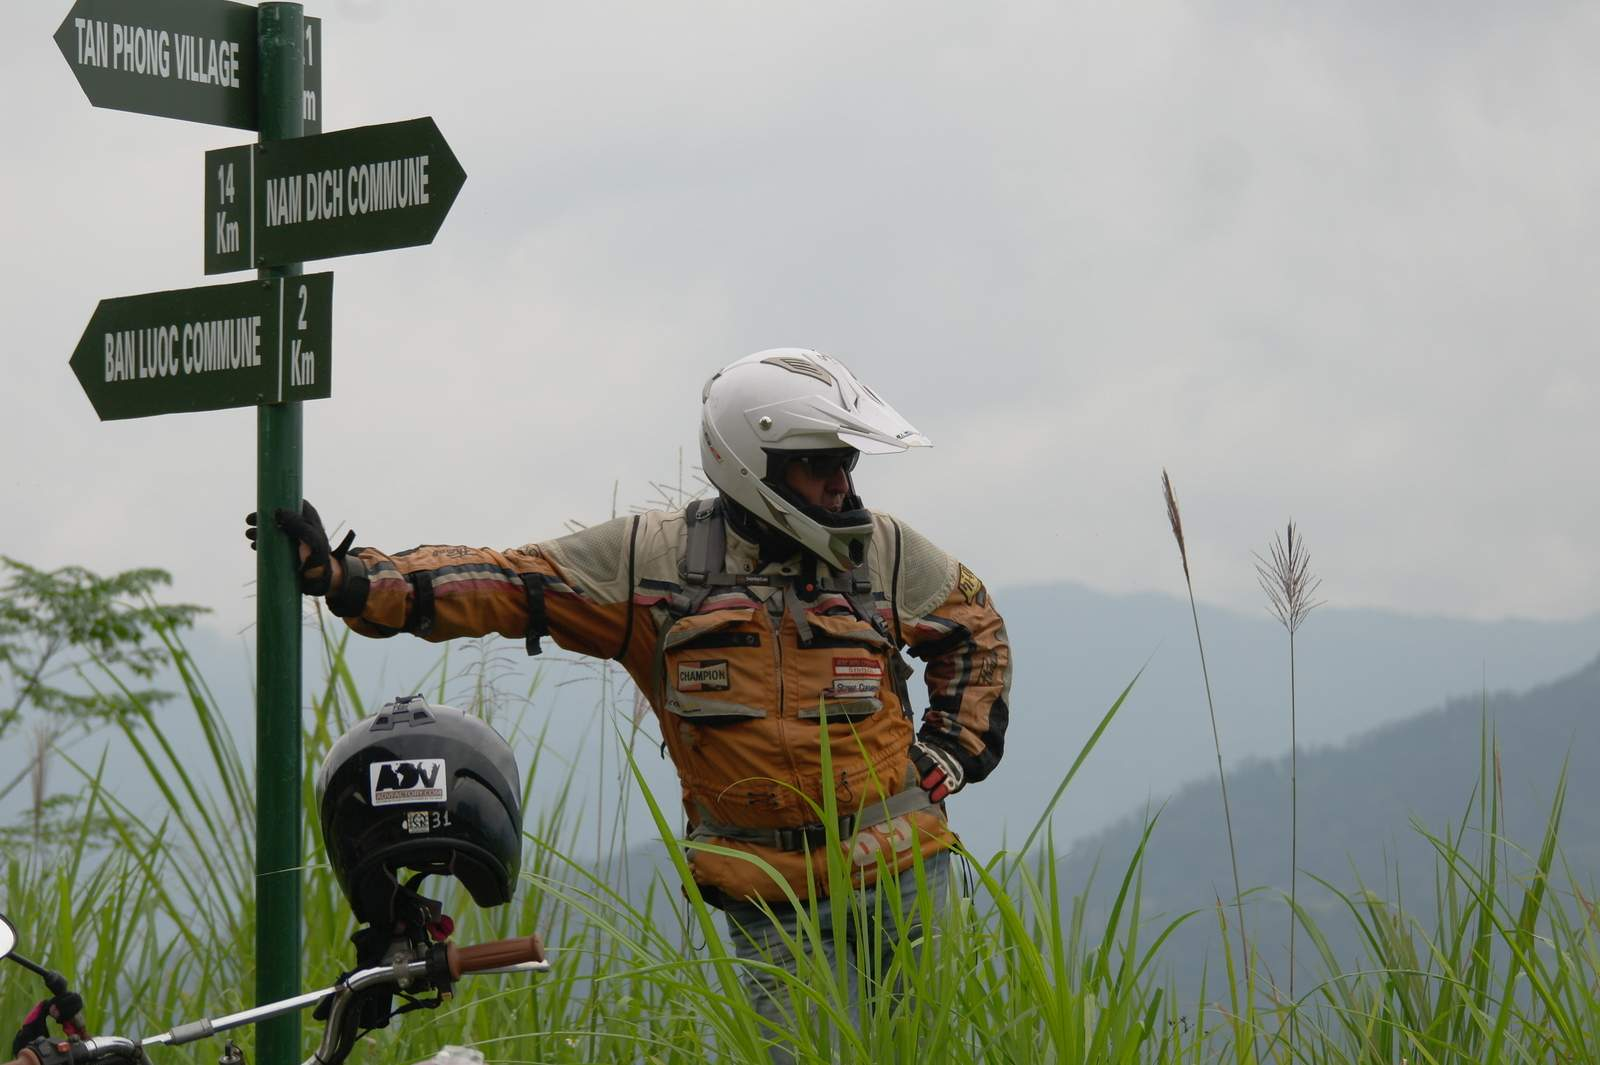 Crossroads in mountains. Mountain road in Vietnam. Vietnam motorcycle trip with Advfactory